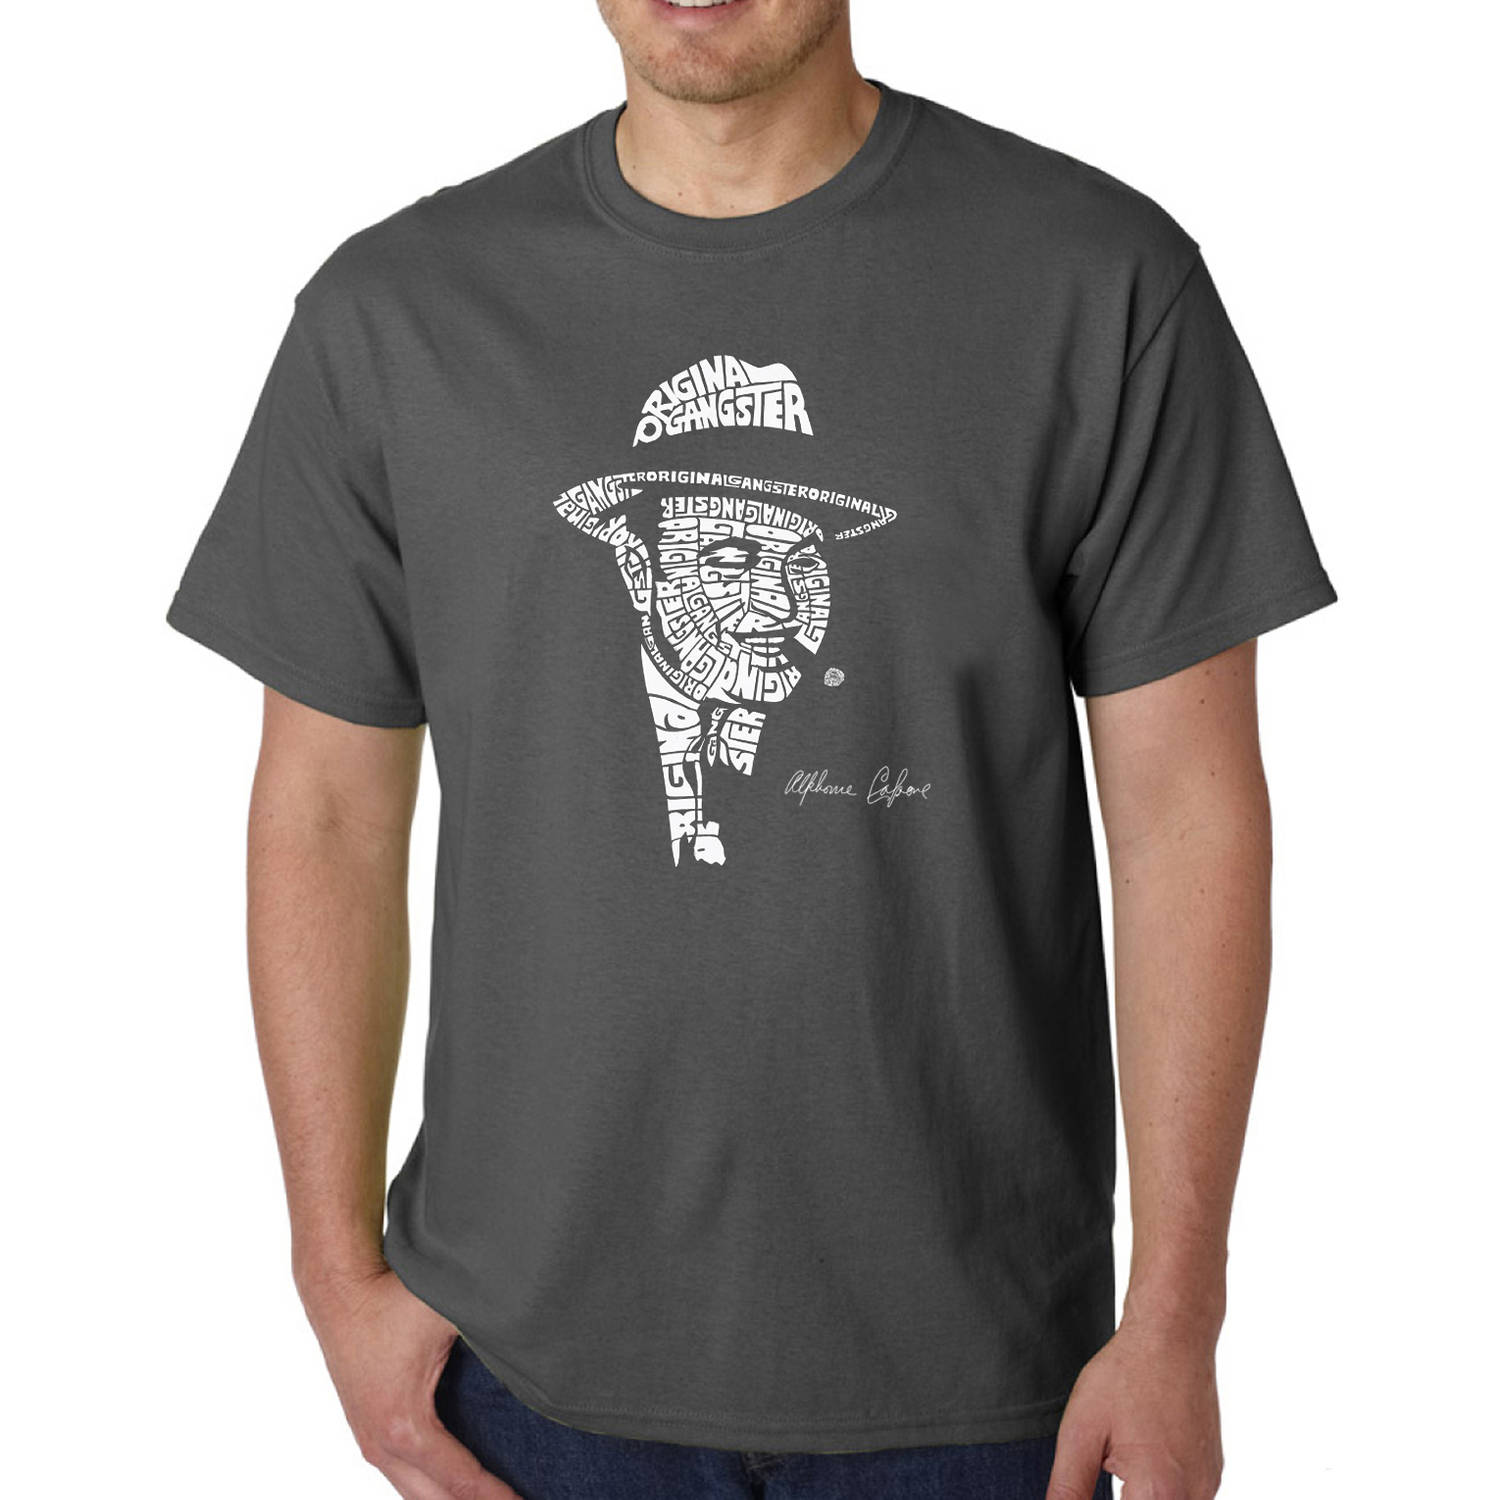 Los Angeles Pop Art Big Men's T-shirt - Al Capone-Original Gangster